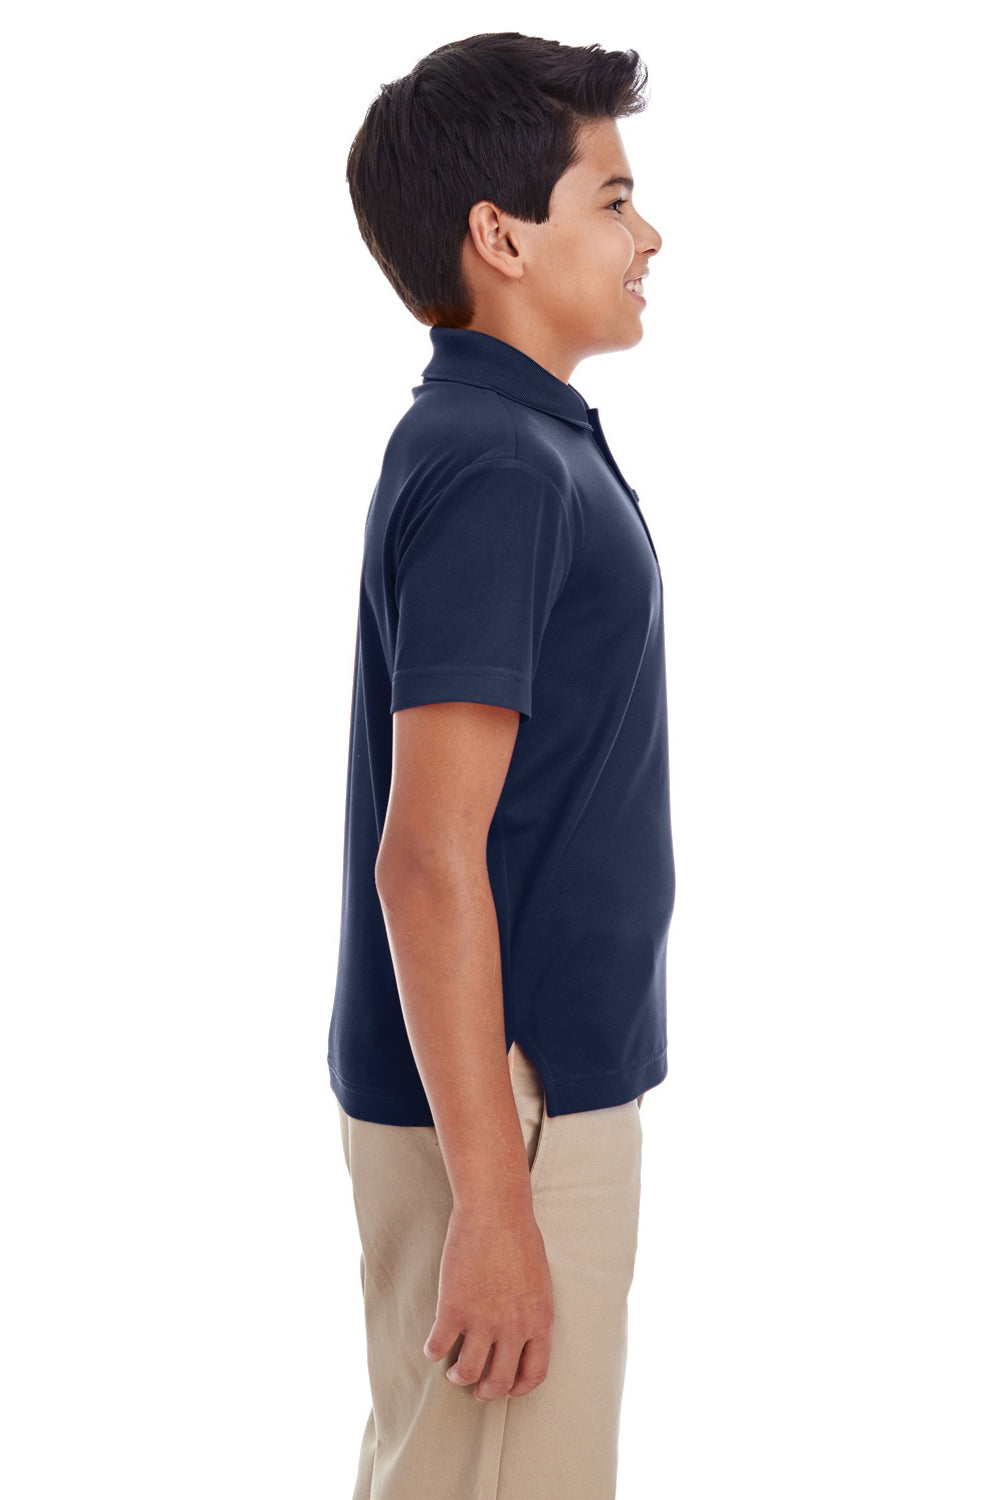 Core 365 88181Y Youth Origin Performance Moisture Wicking Short Sleeve Polo Shirt Navy Blue Side